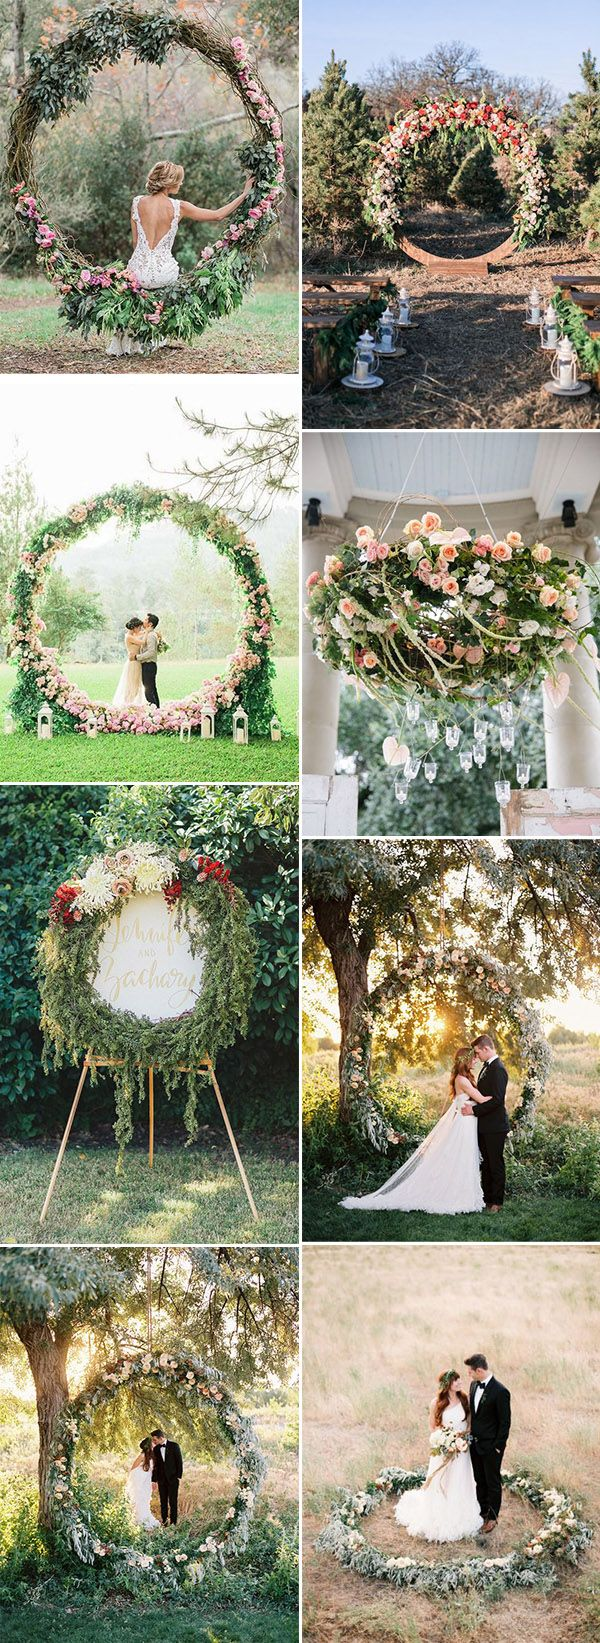 organic giant floral wreath wedding decoration ideas